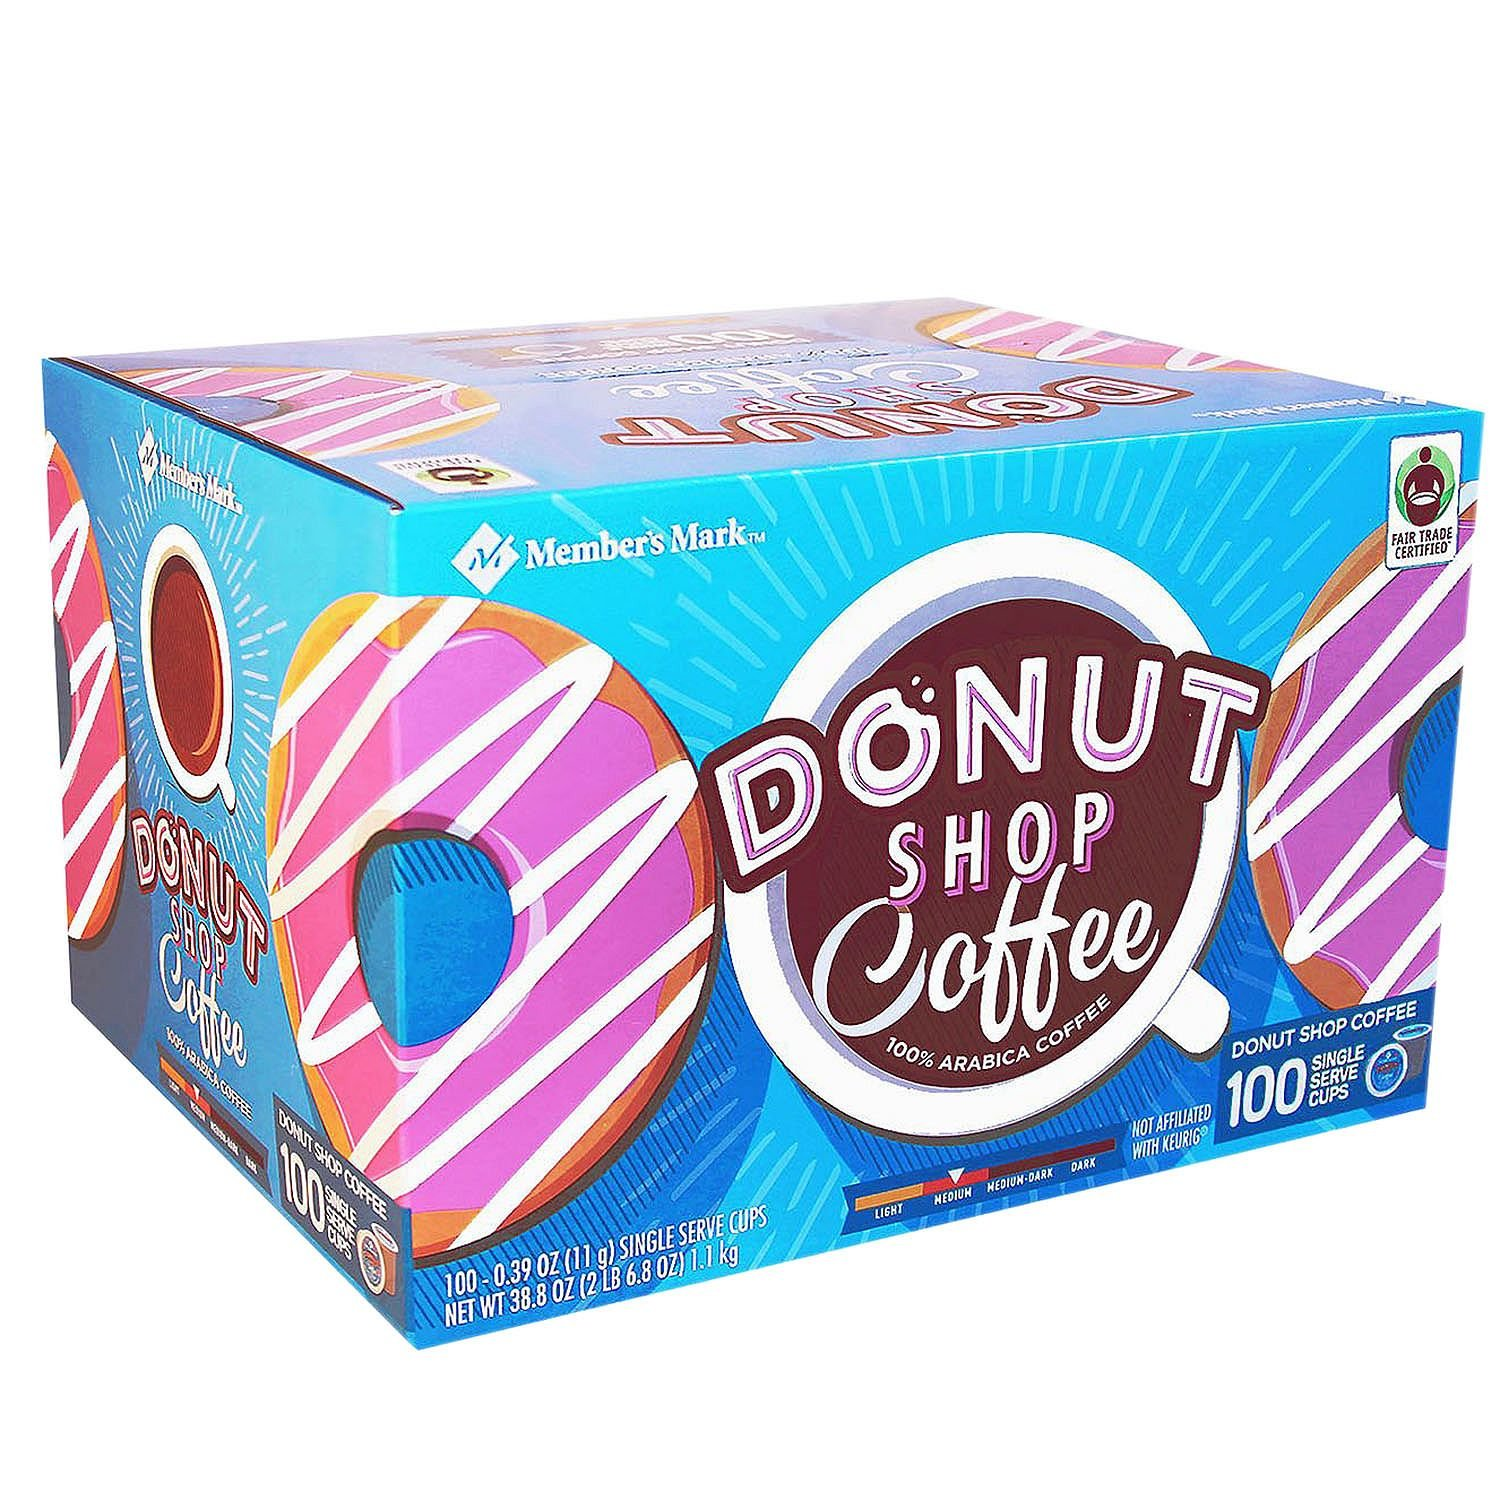 Member's Mark Donut Shop Coffee Safety and trust A1 Now on sale 100 cups. single-serve